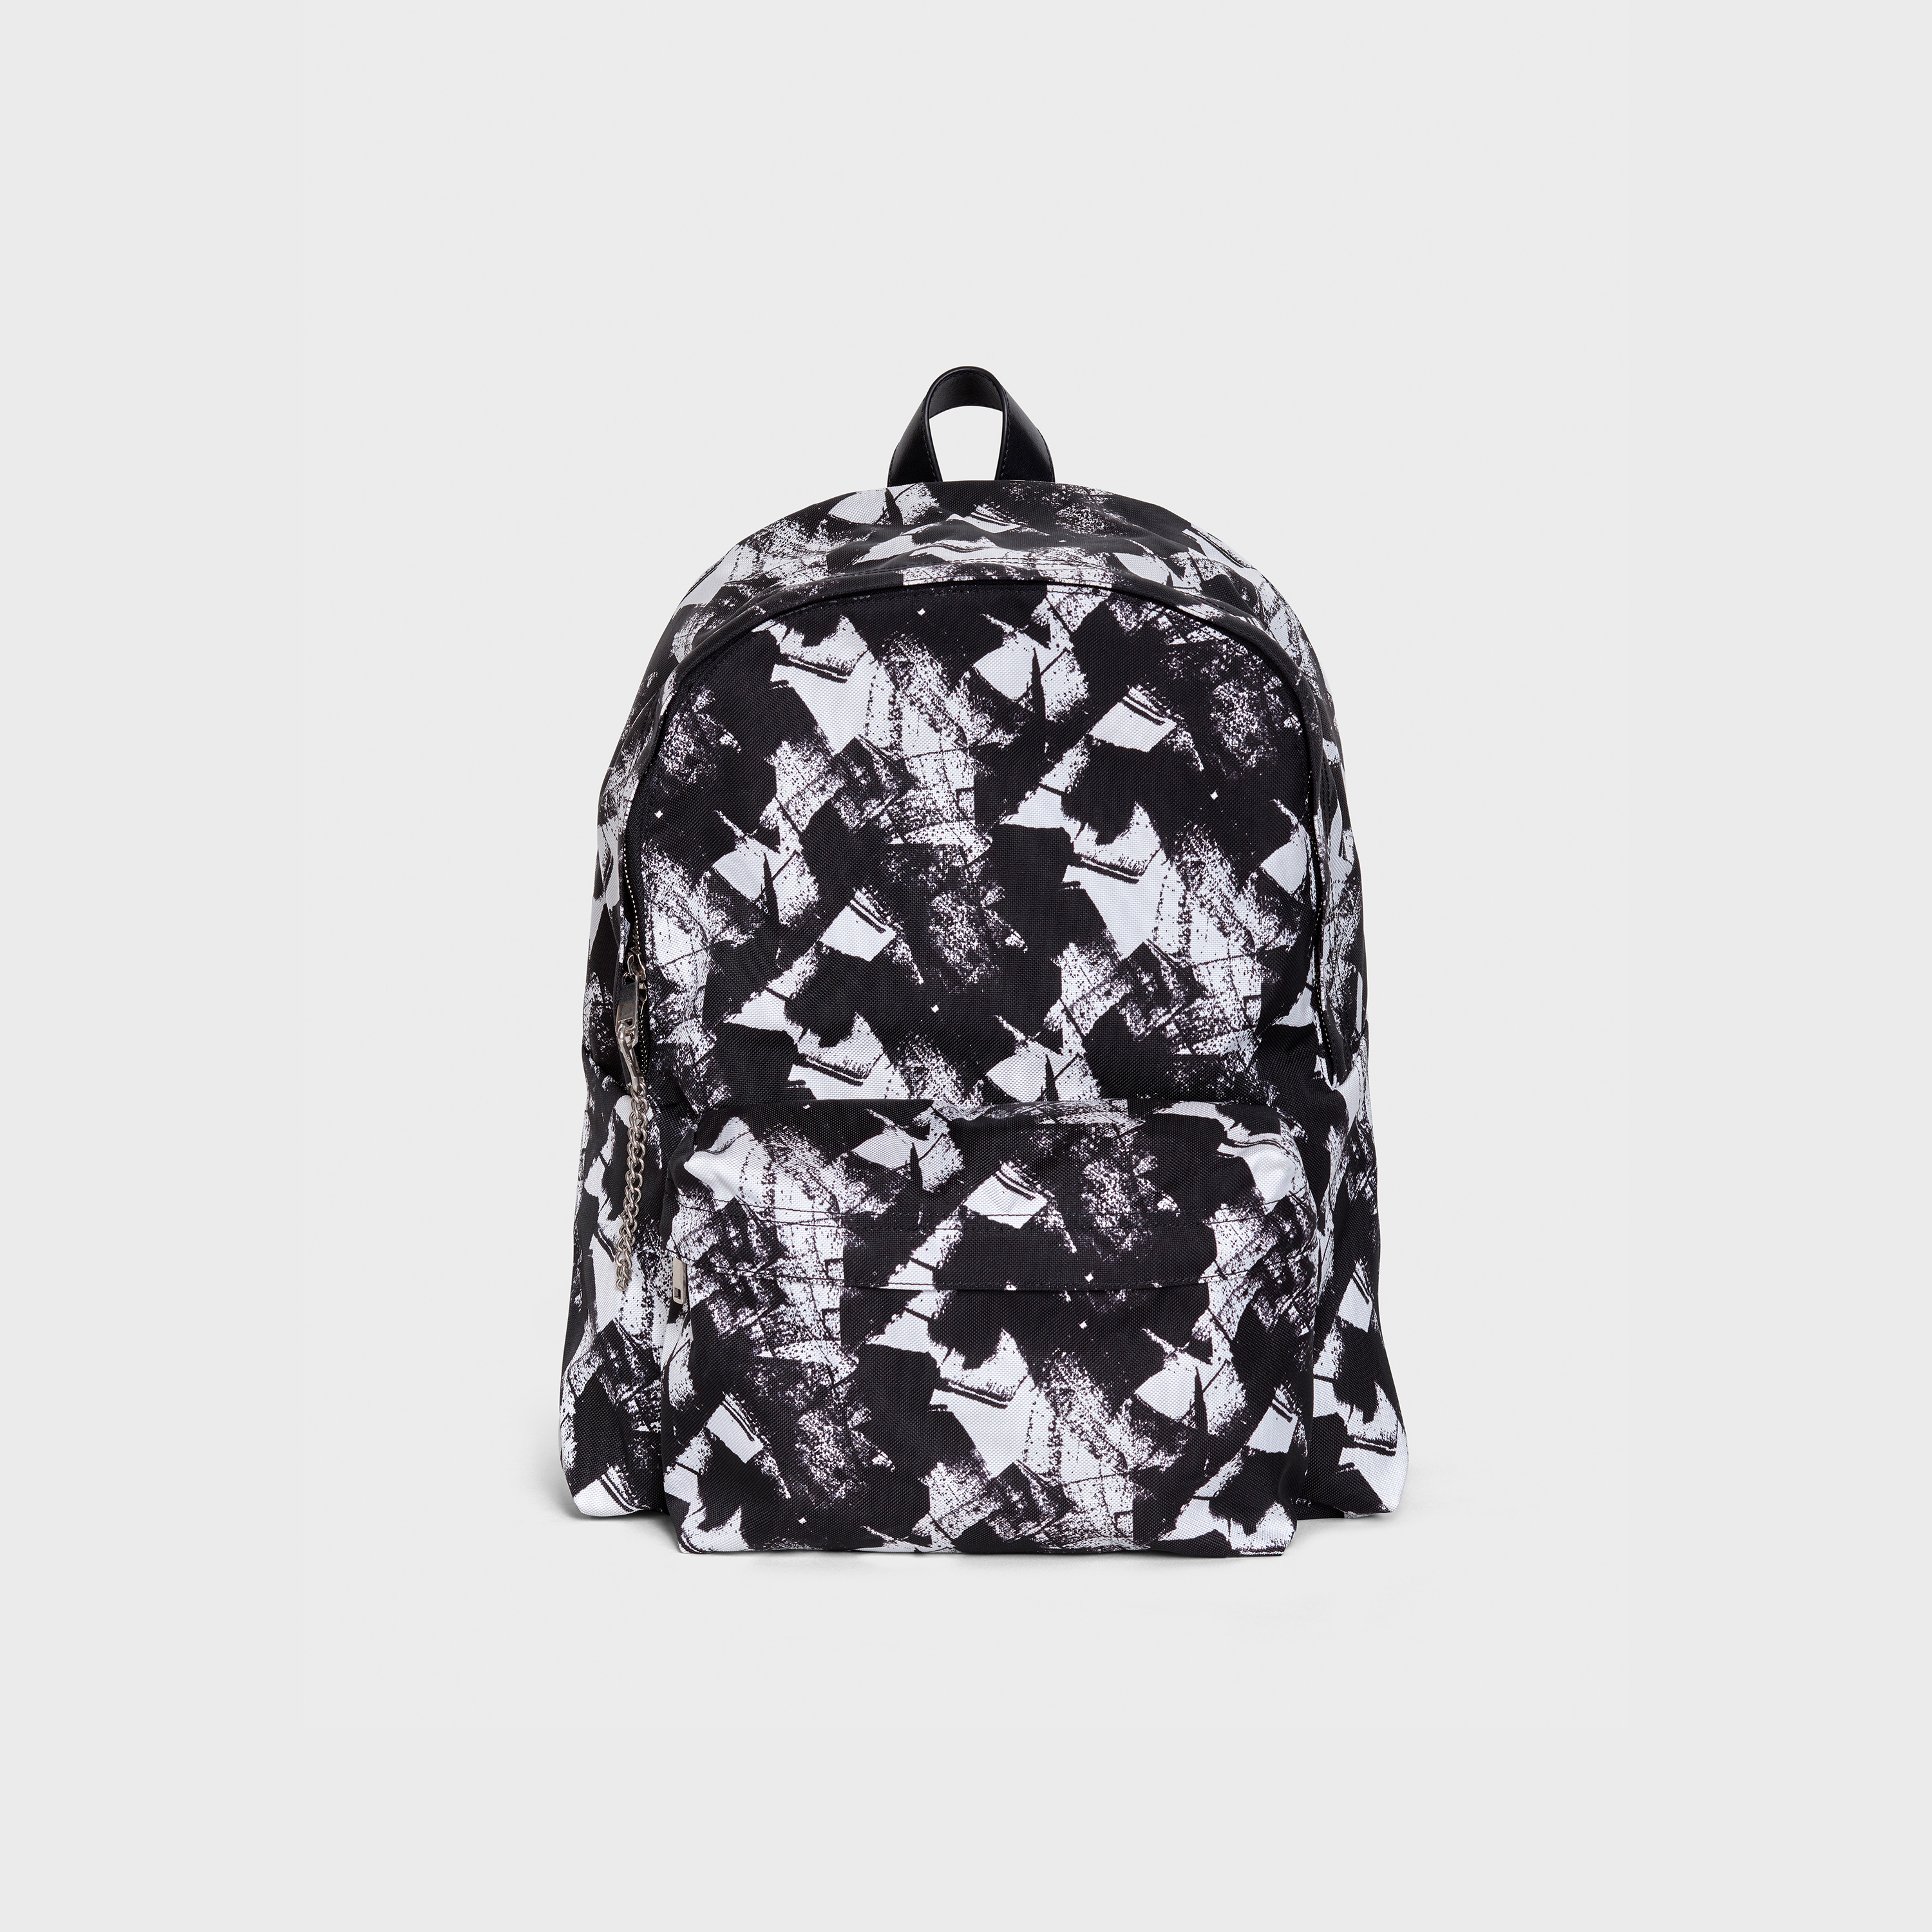 "Medium Backpack in David Hominal "" Détail "" printed Nylon 